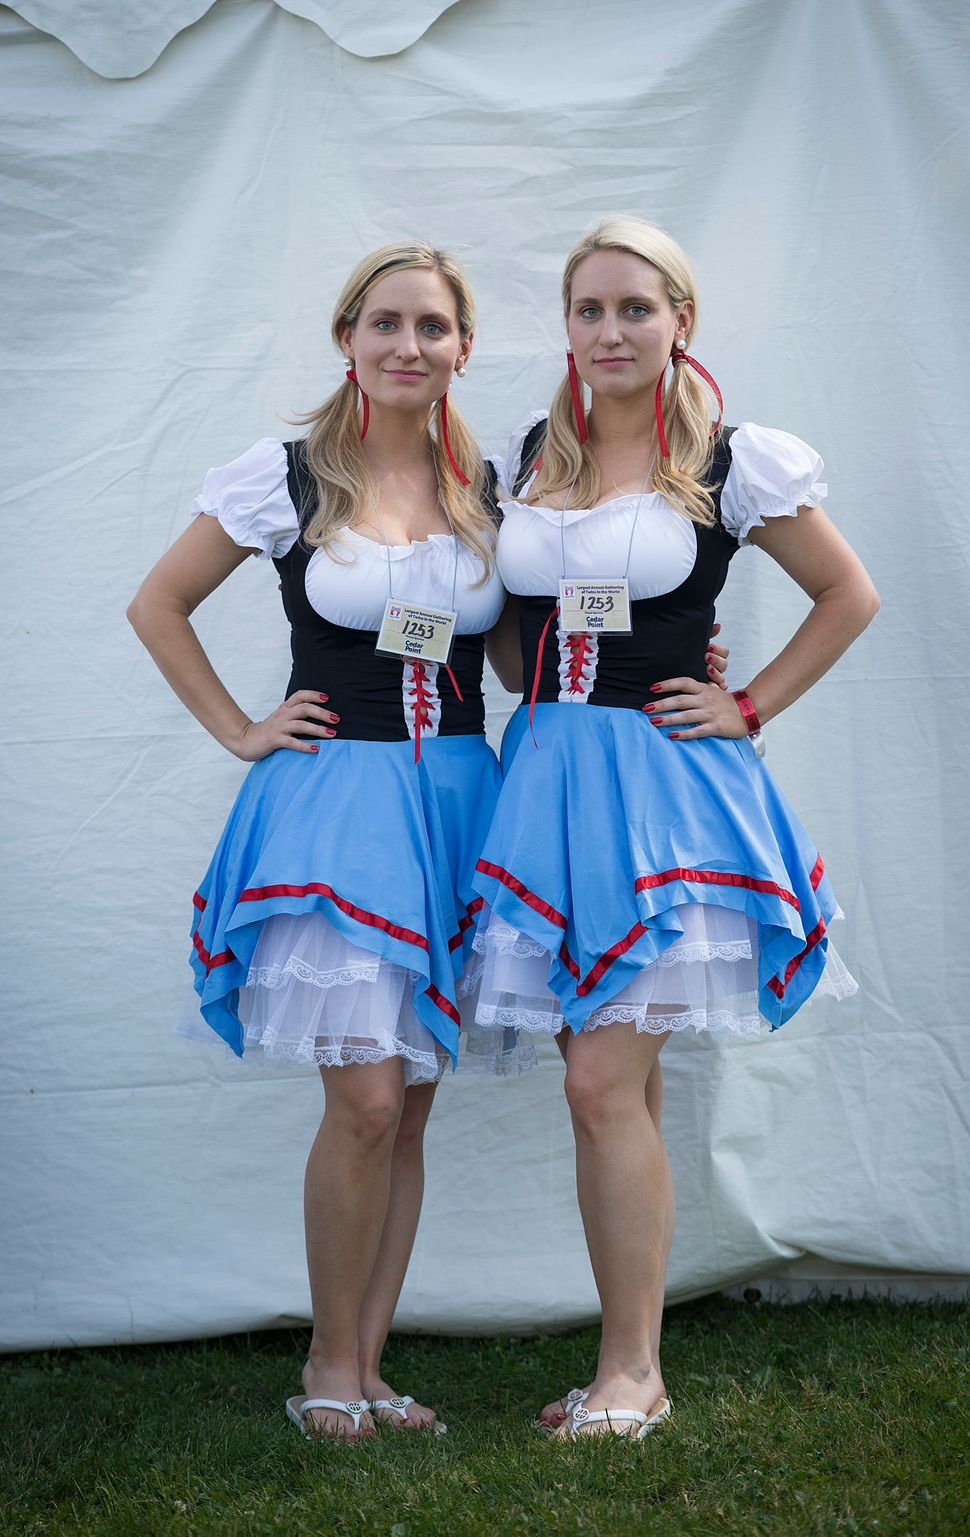 Briana (left) and Brittany Deane celebrate their German-Swiss heritage.